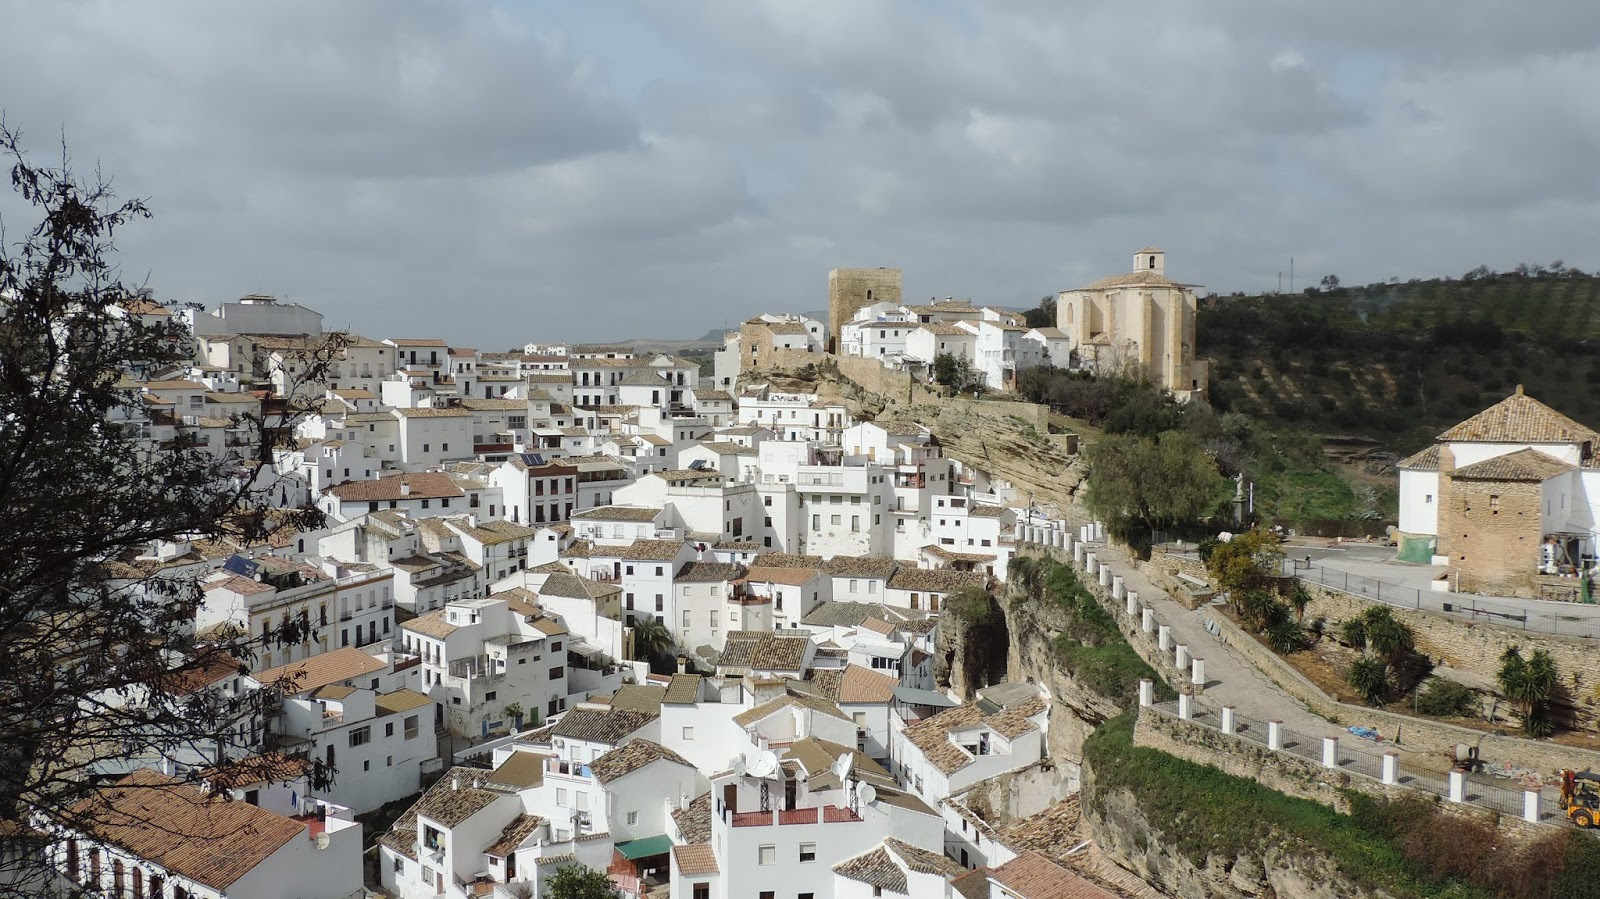 Travel with Kevin and Ruth!: The White Towns of Andalusia, Spain